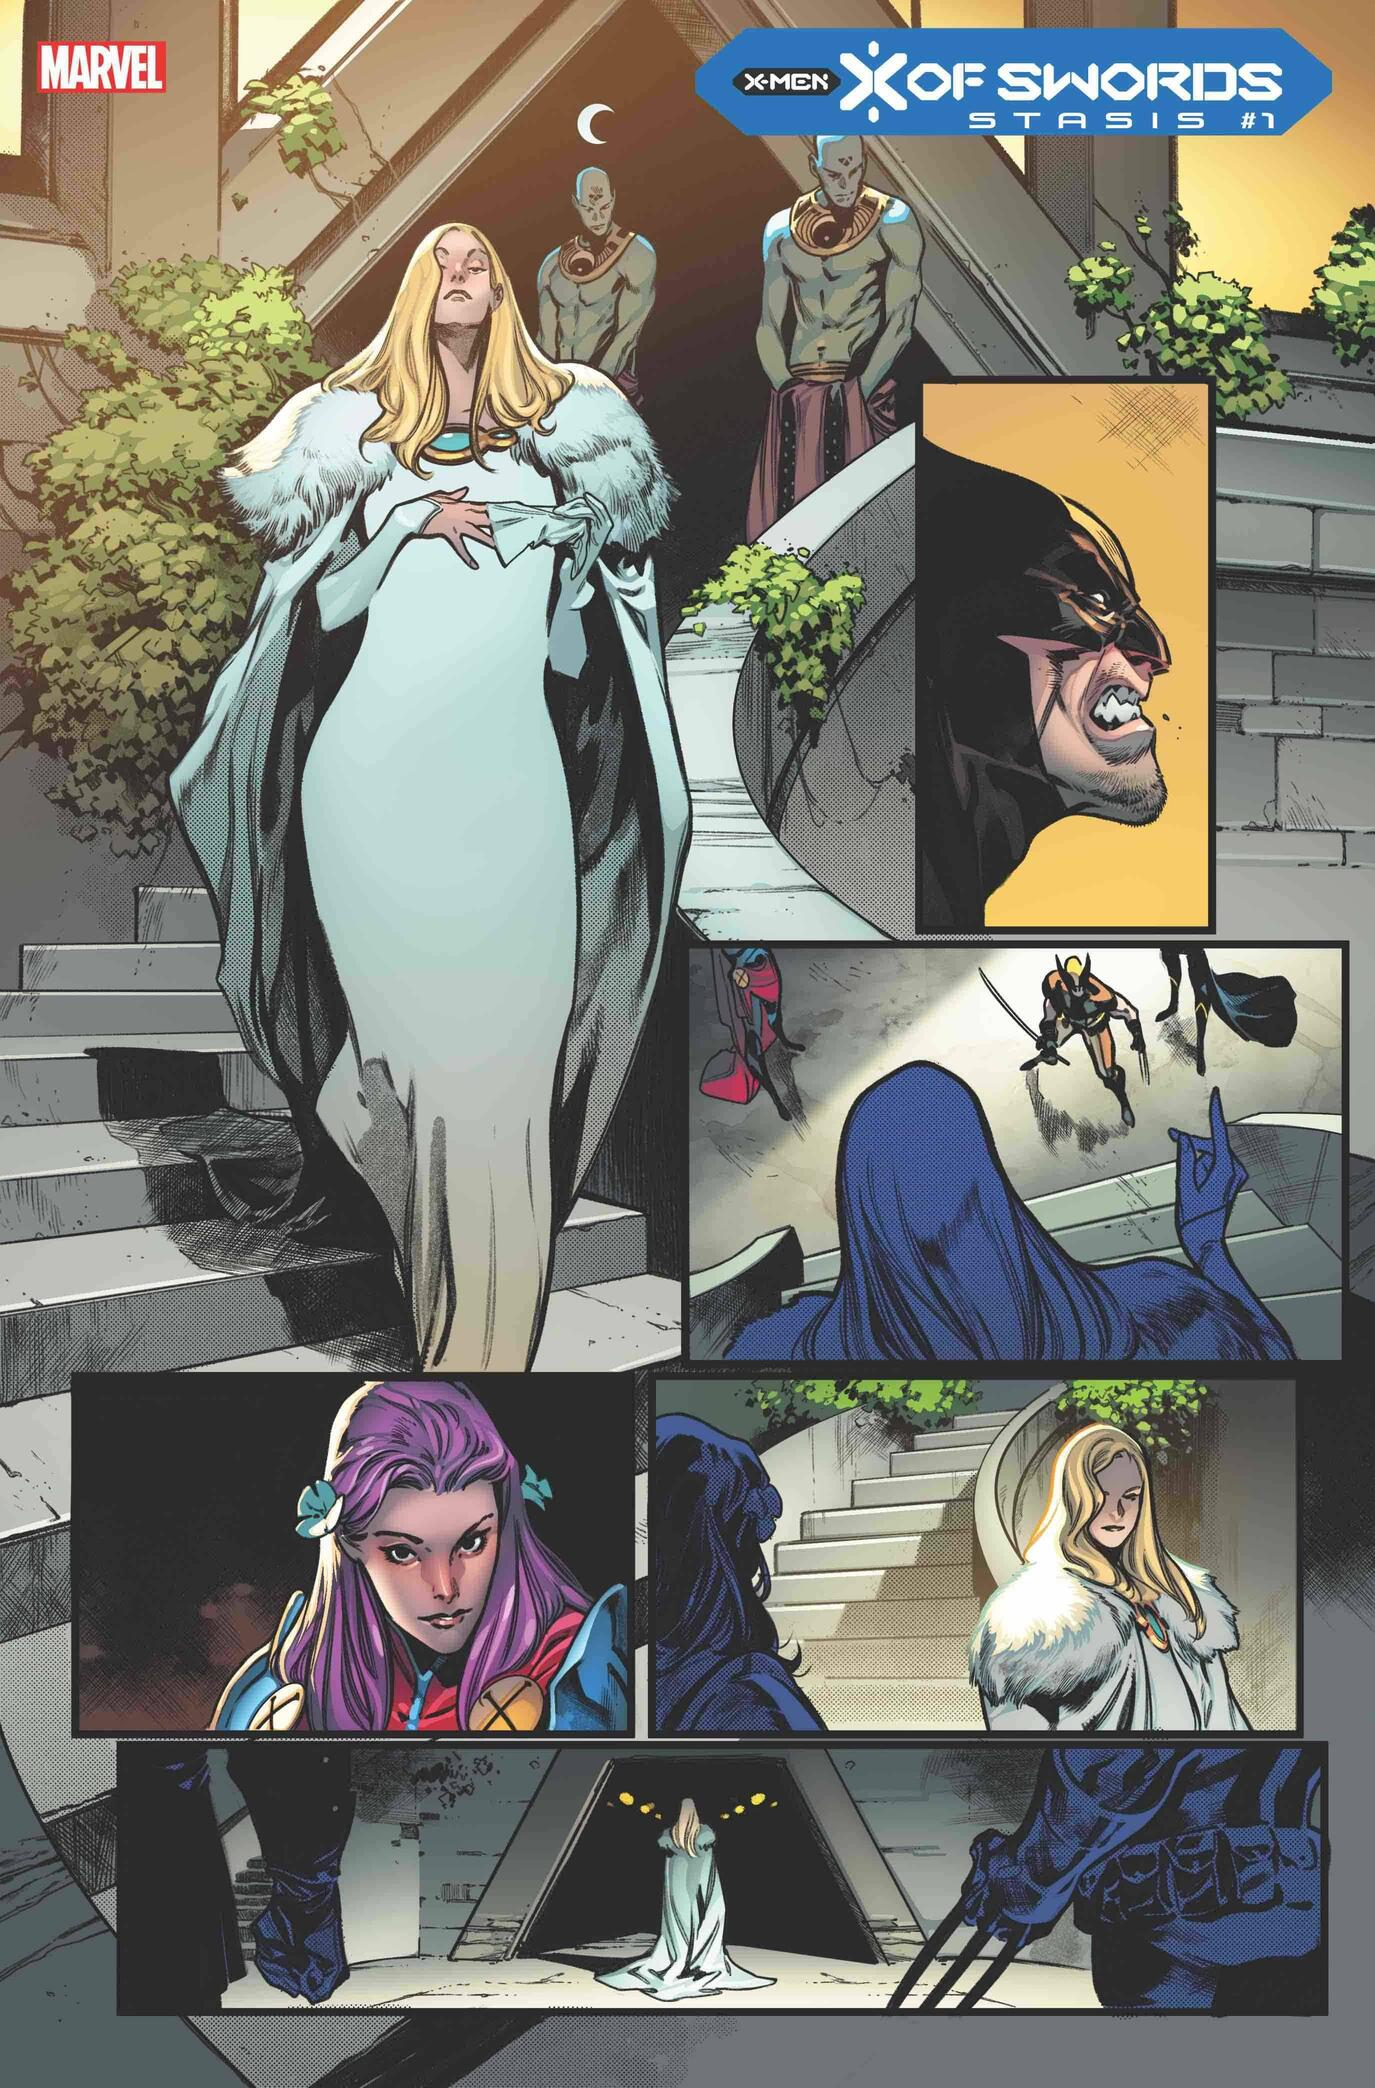 X OF SWORDS: STASIS #1 preview interiors by Pepe Larraz with colors by Marte Gracia